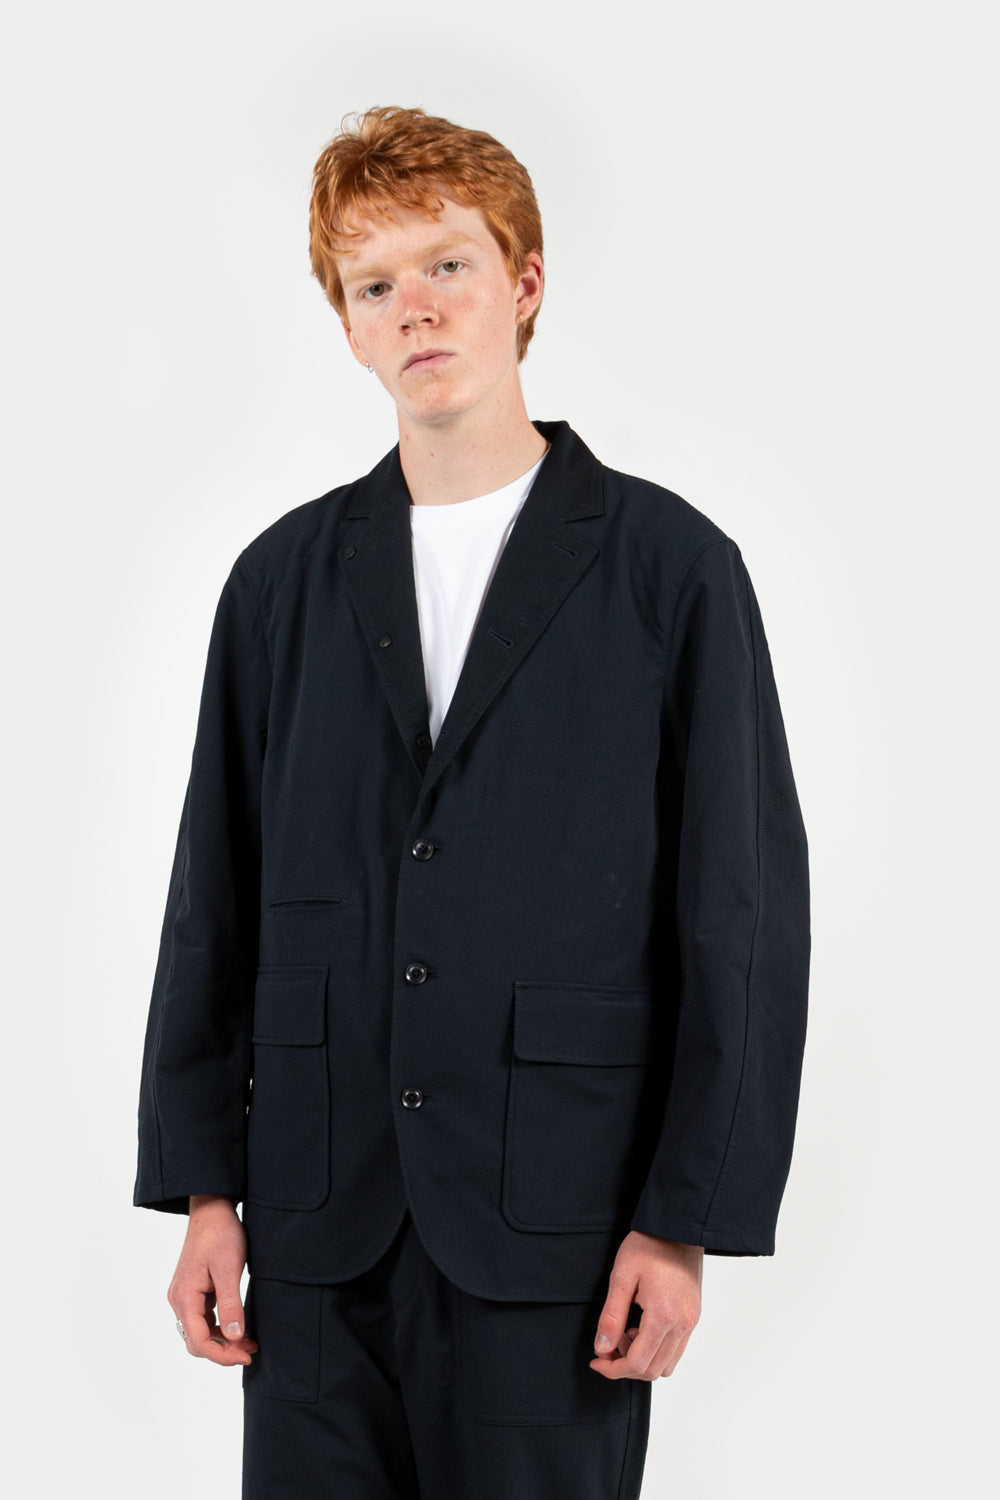 nanamica nanamican club alphadry jacket in navy